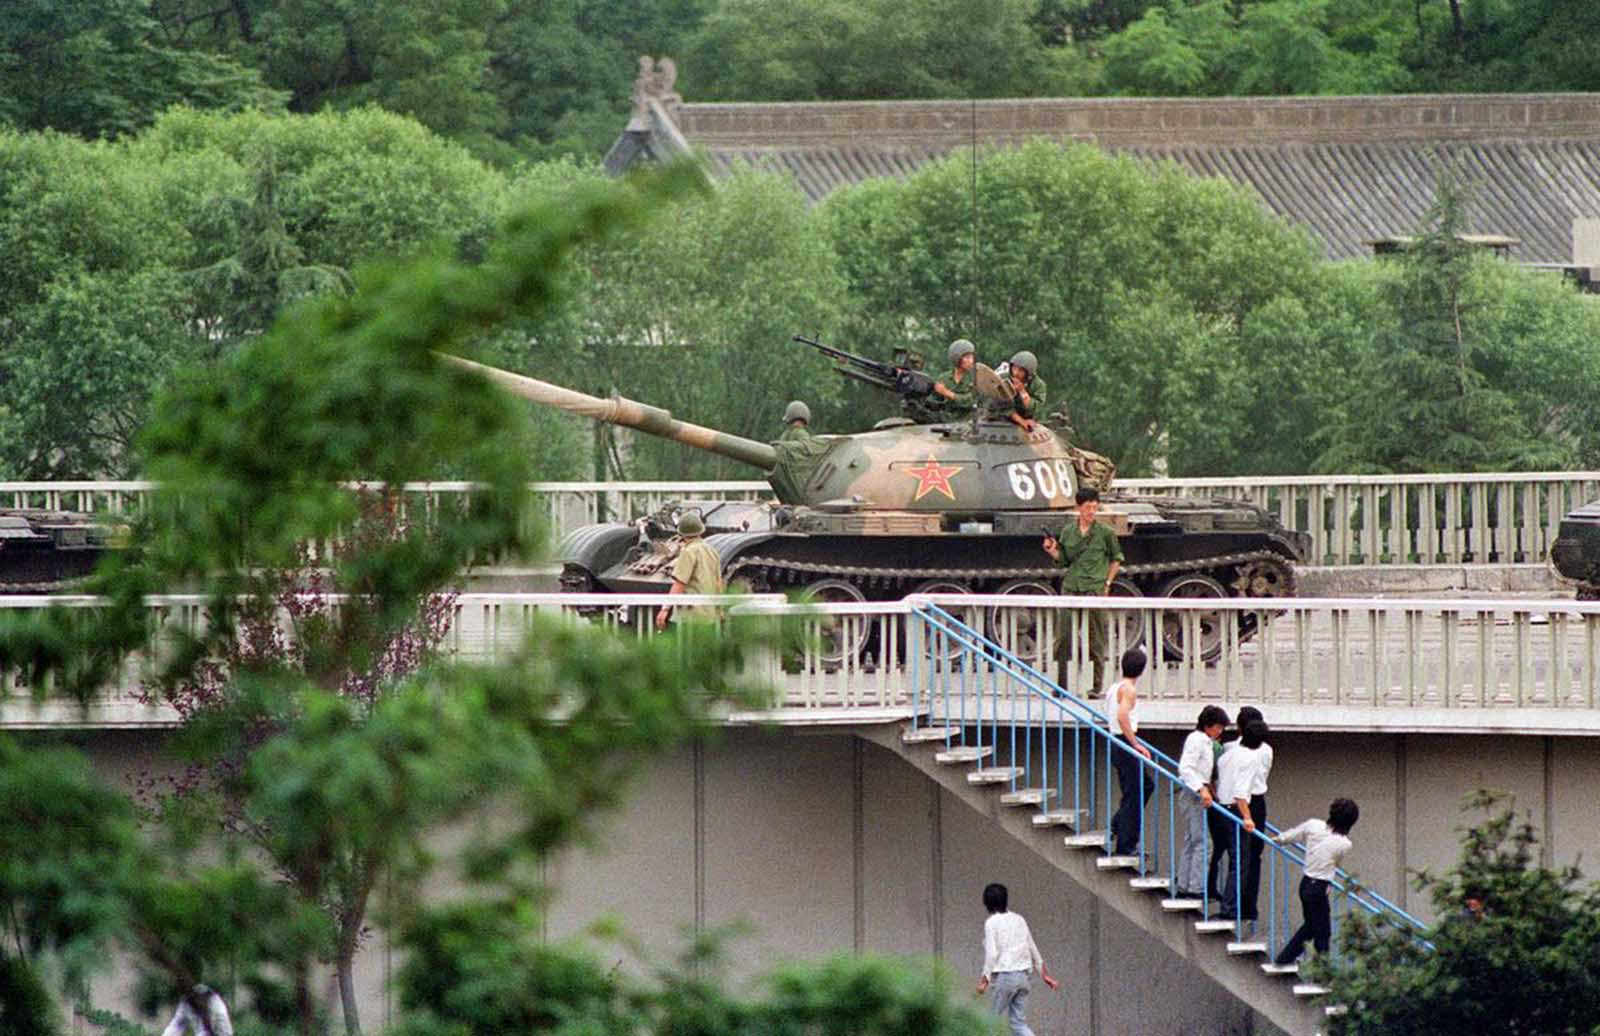 Chinese onlookers run away as a soldier threatens them with a gun on June 5, 1989 as tanks took position at Beijing's key intersections next to the diplomatic compound.